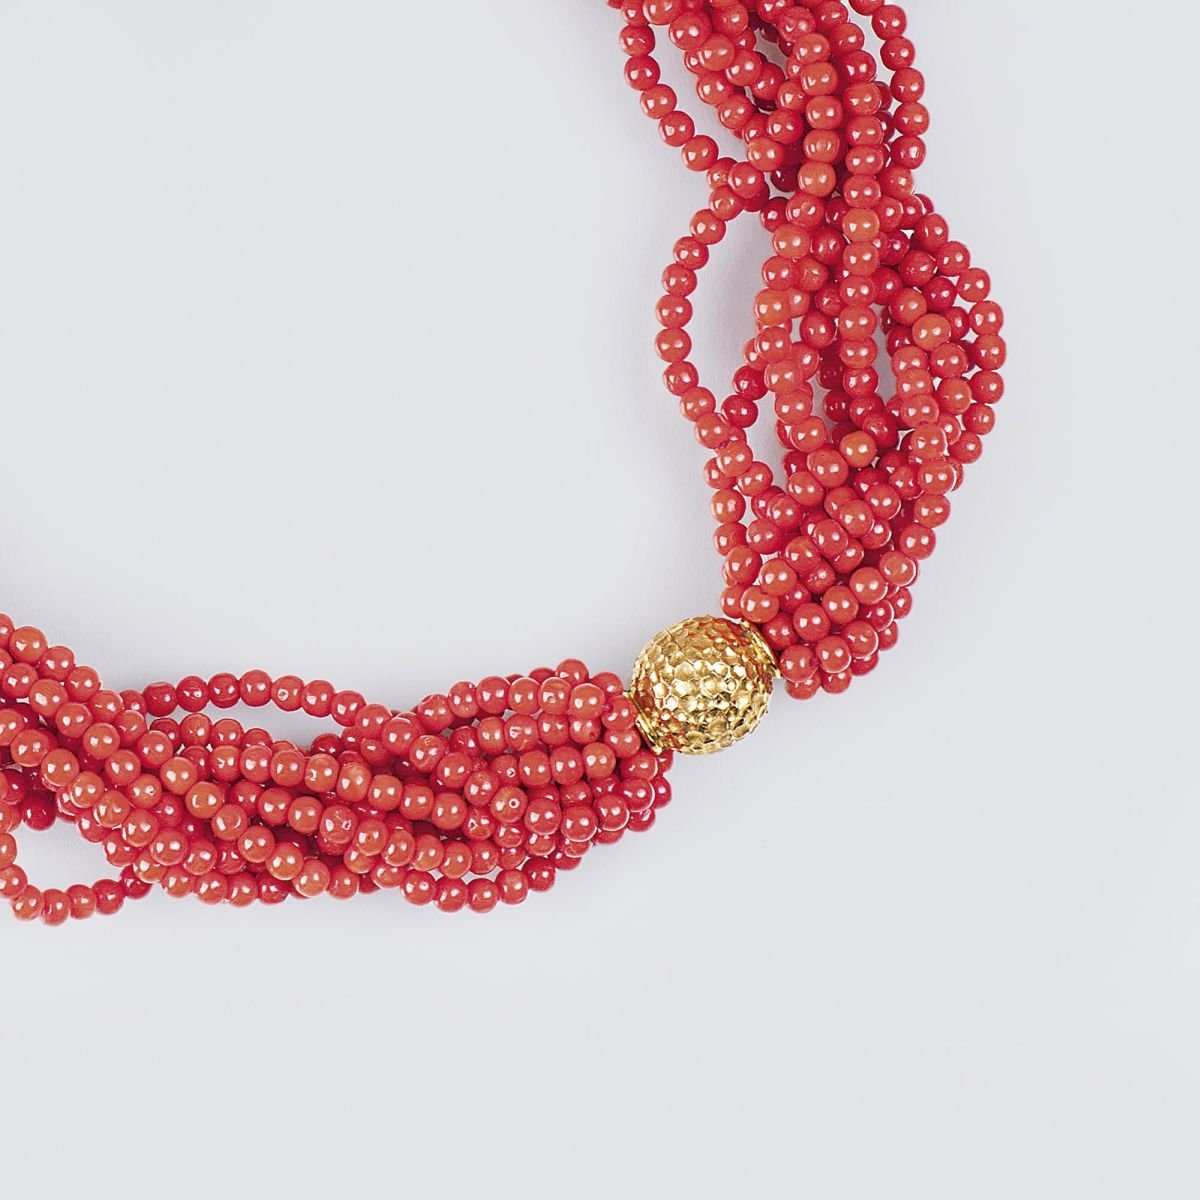 A Coral Necklace with Golden Clasp